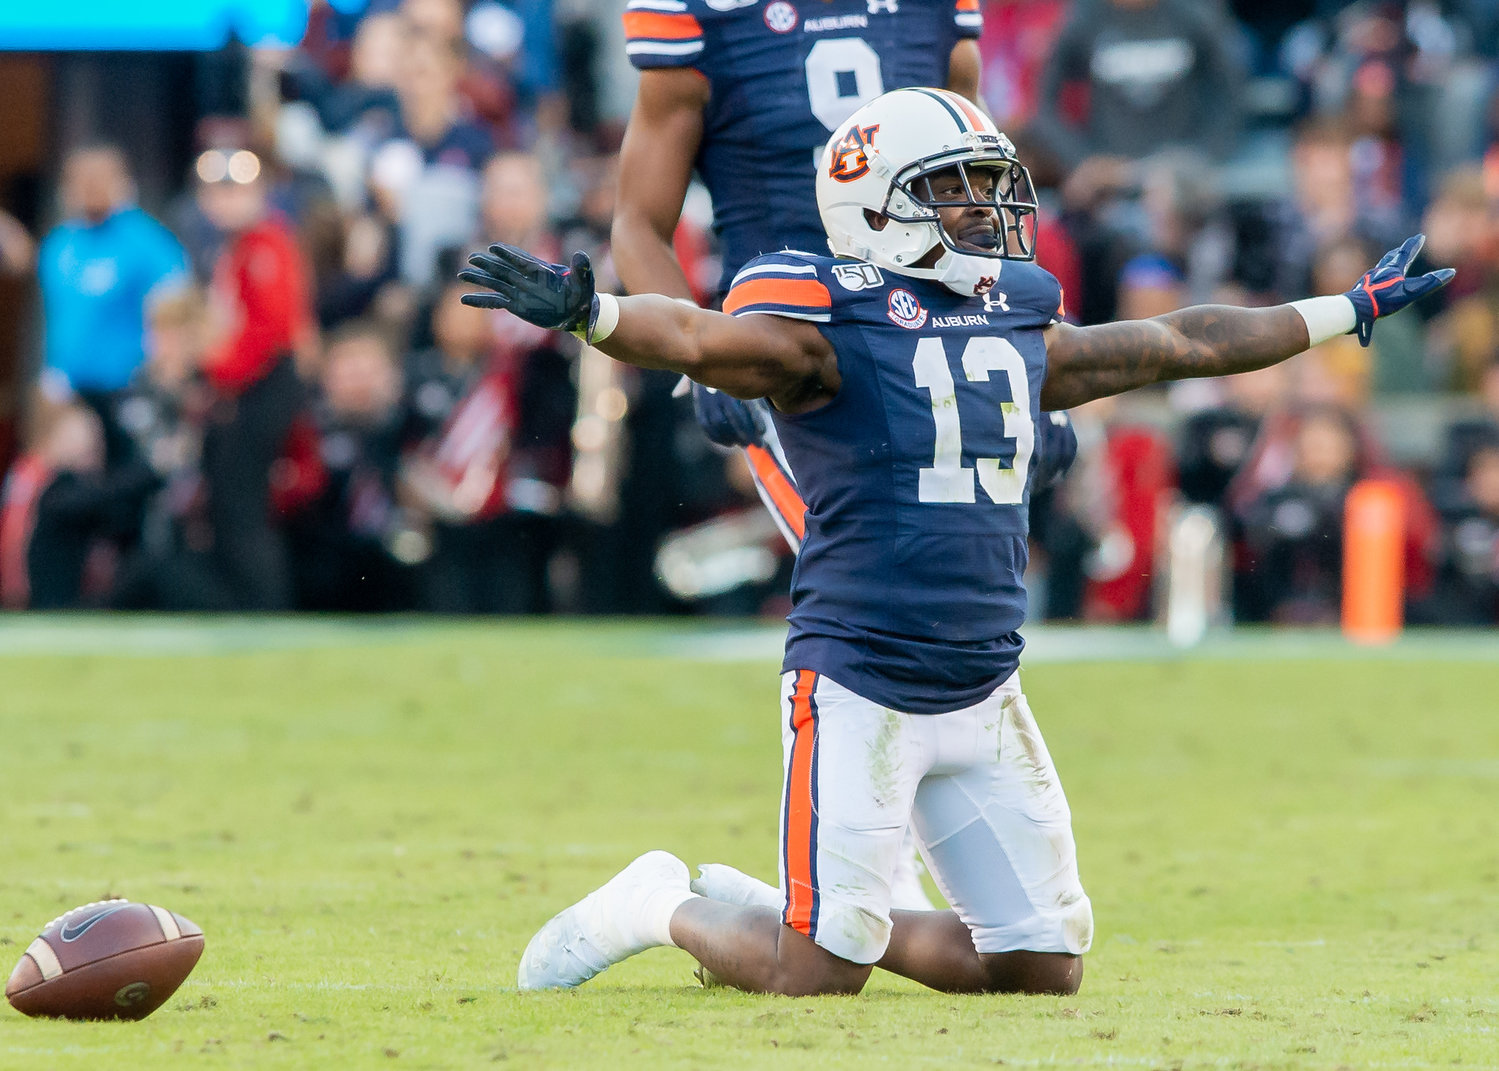 Auburn Tigers defensive back Javaris Davis (13) celebrate a pass break up during the first half of Saturday's game, at Jordan-Hare Stadium in Auburn,, AL. Daily Mountain Eagle -  Jeff Johnsey